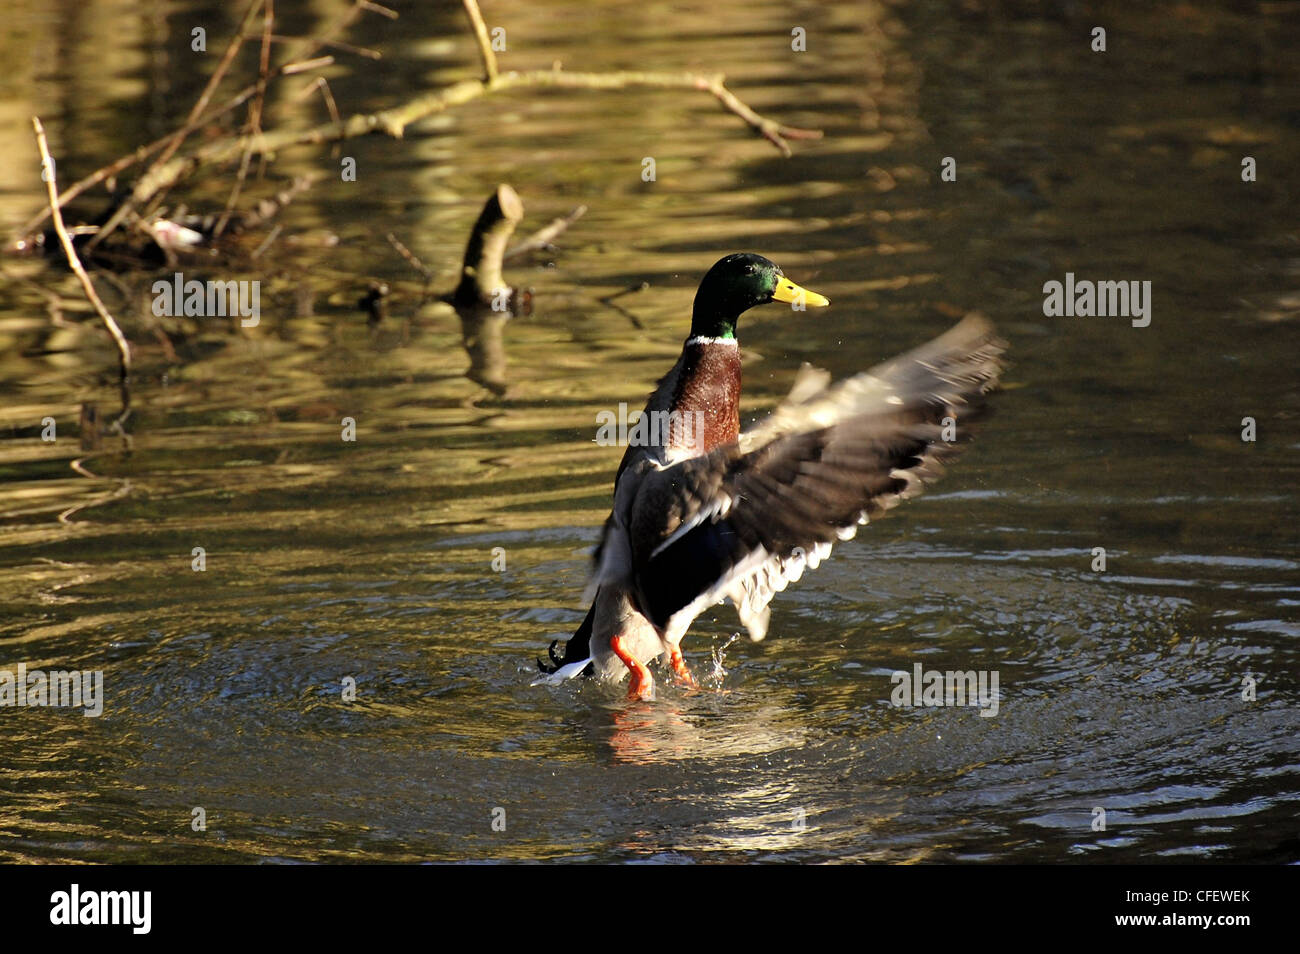 Male Mallard duck standing upright in water with wings fully swept forward - Stock Image